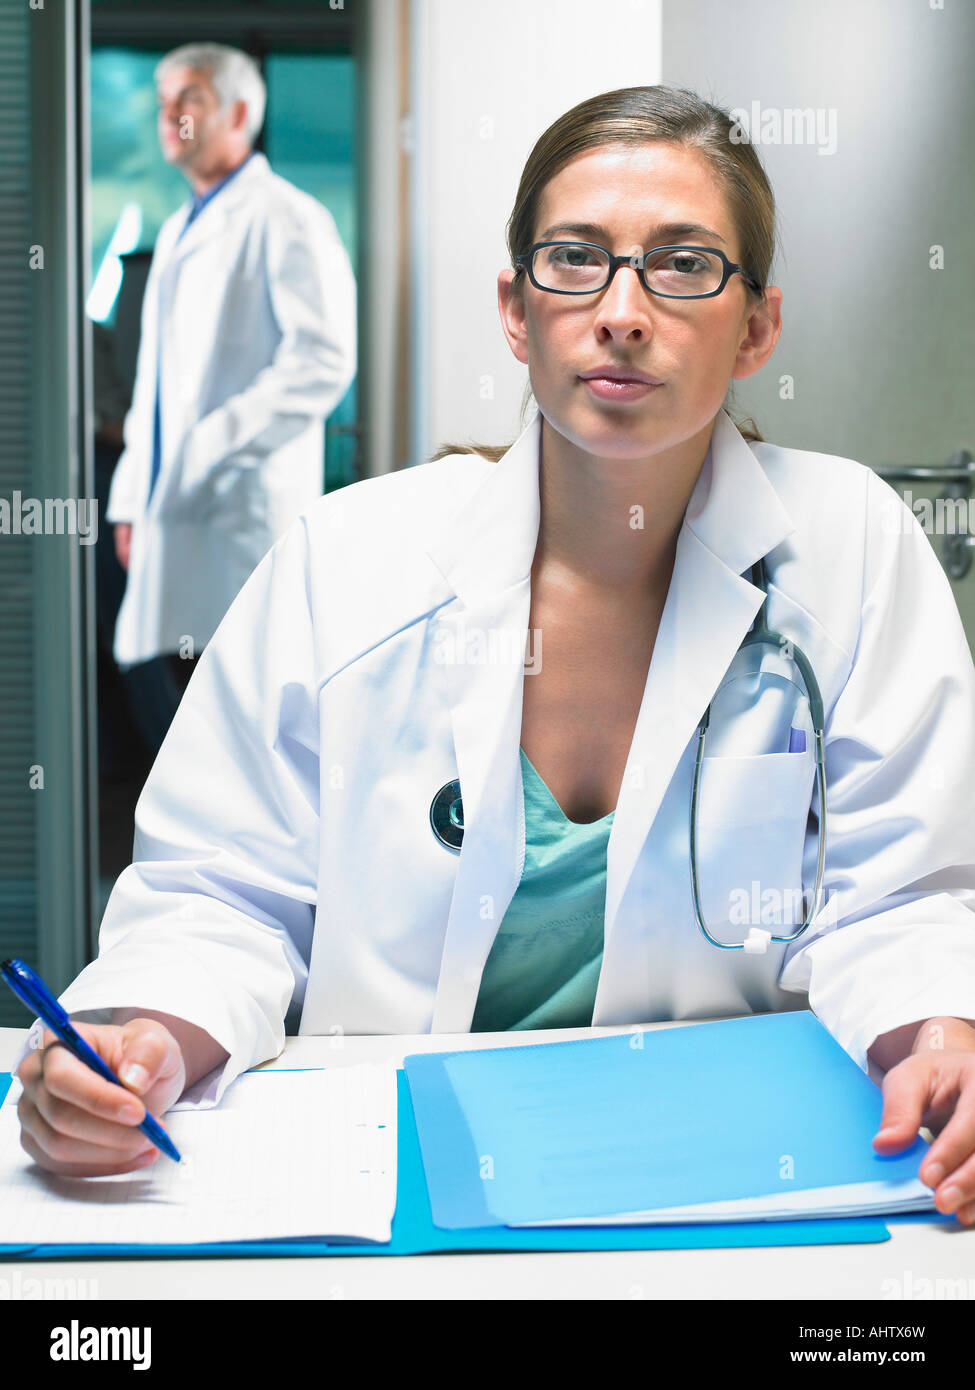 Portrait of female doctor at her desk with male doctor in background. - Stock Image